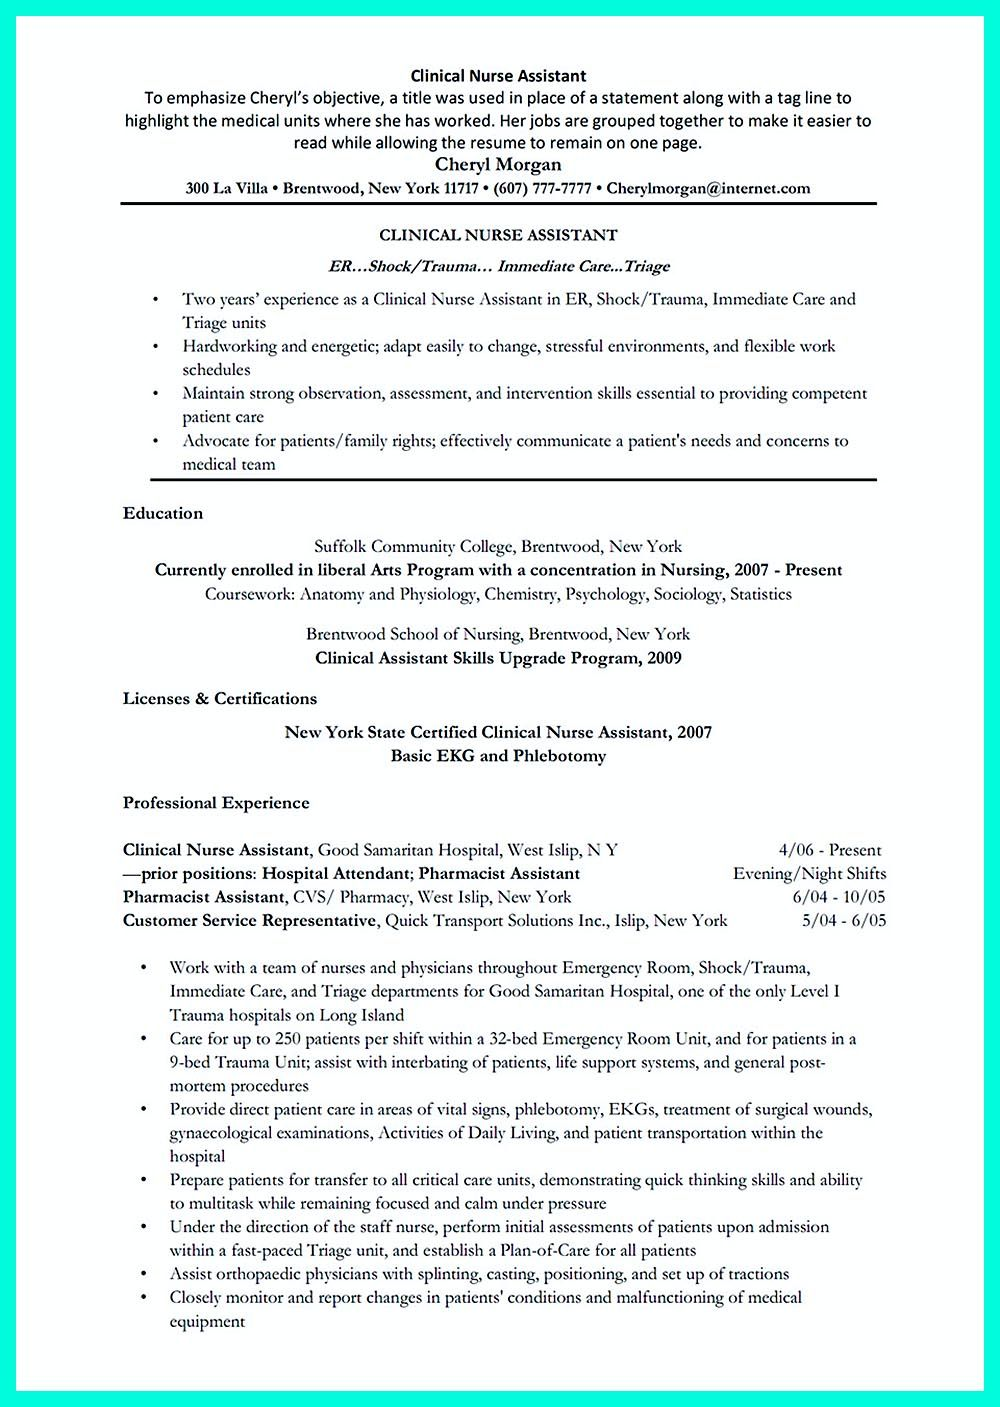 writing certified nursing assistant resume is simple if you follow